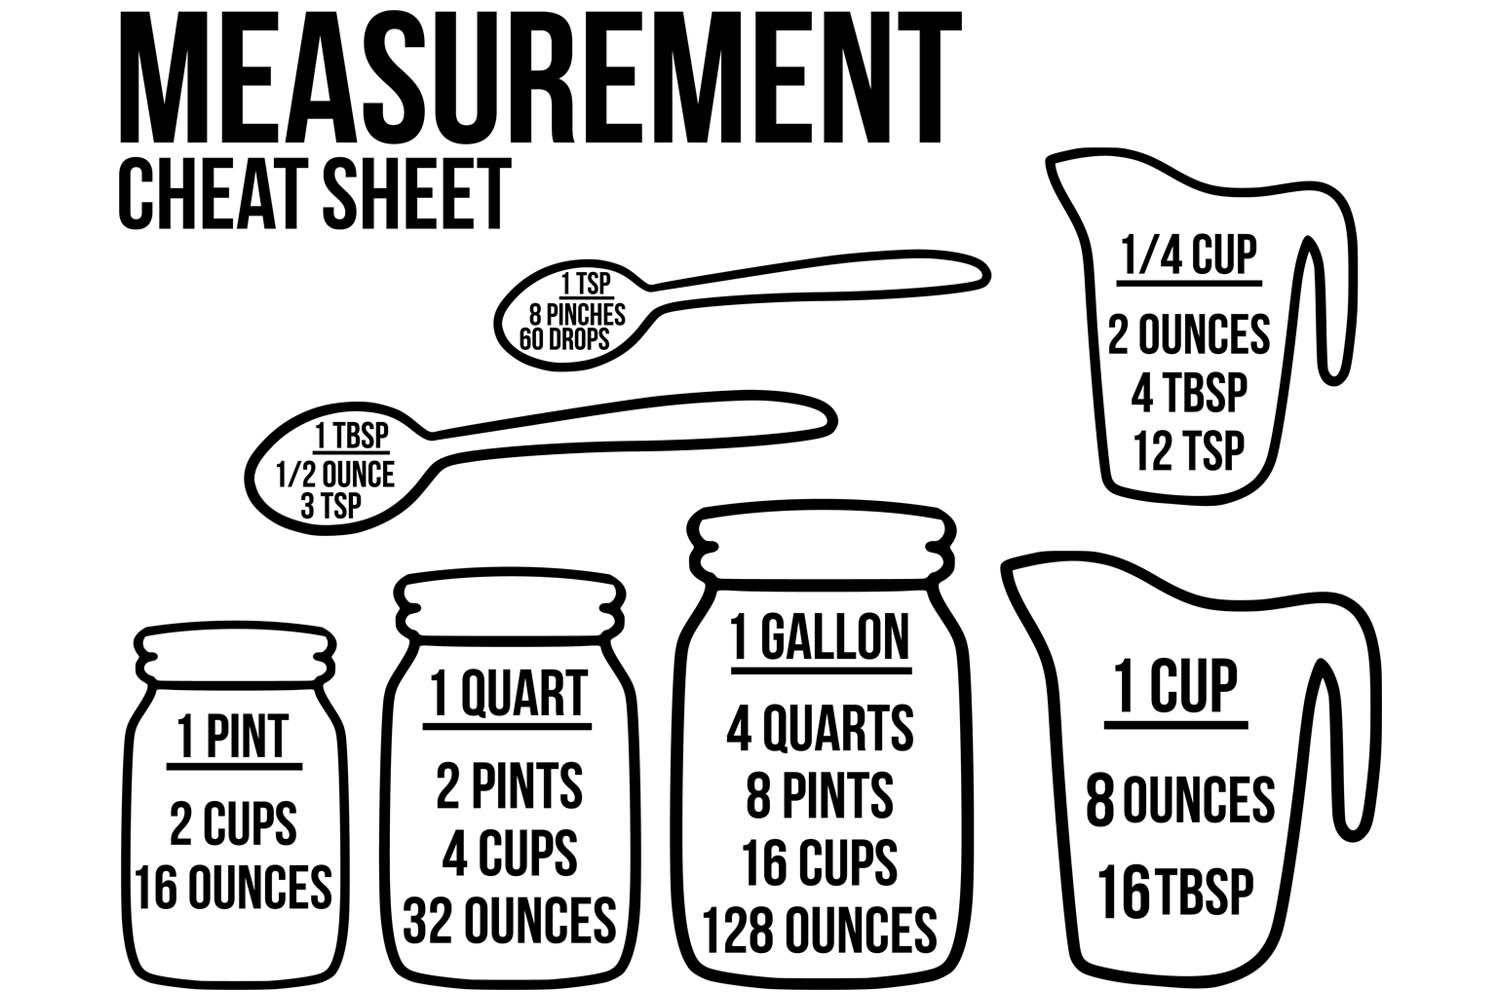 Measurement Cheat Sheet Svg Kitchen Svg Measuring Svg